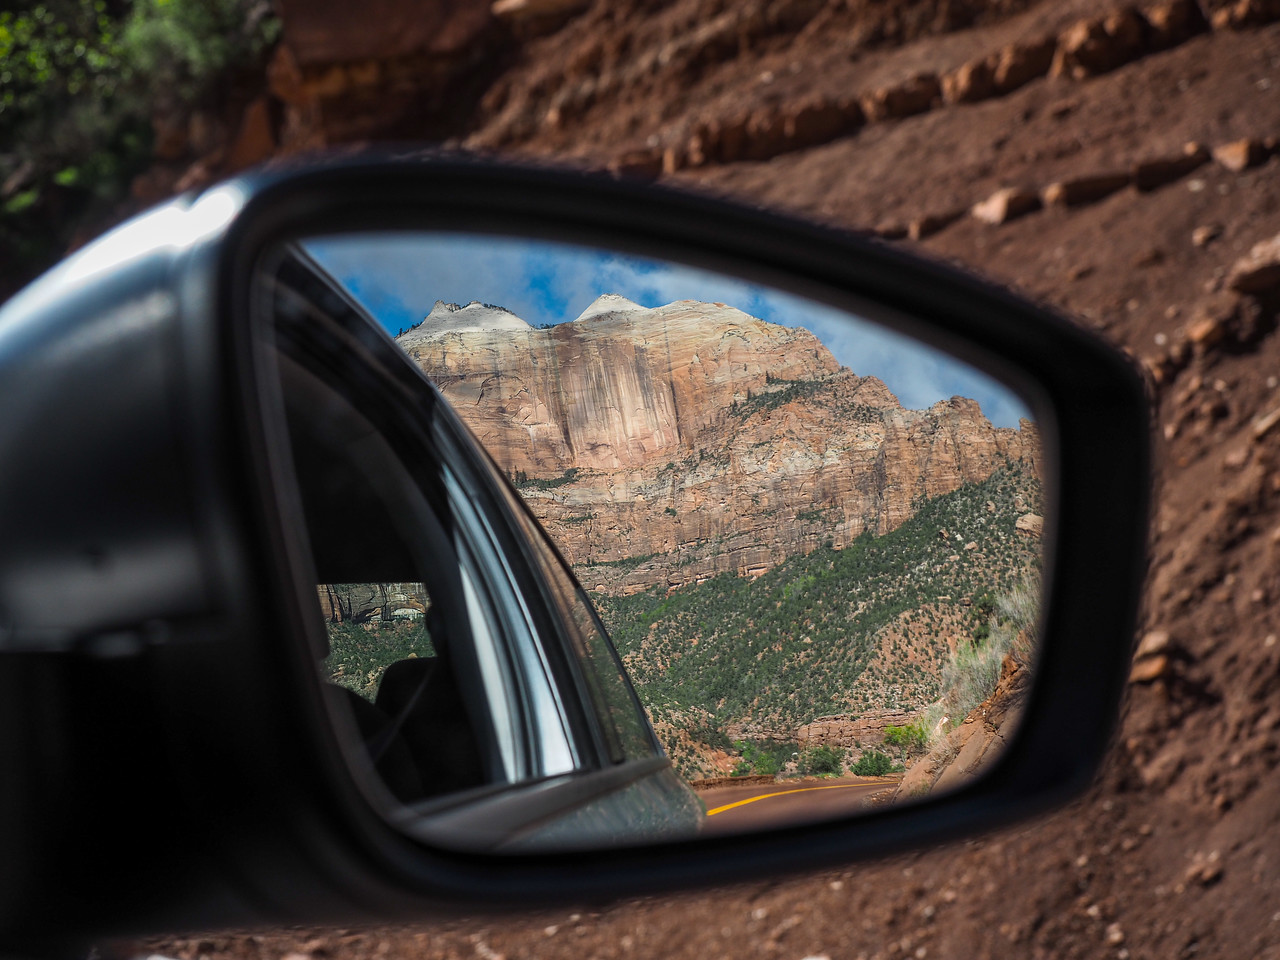 Mount Carmel Highway in a car mirror